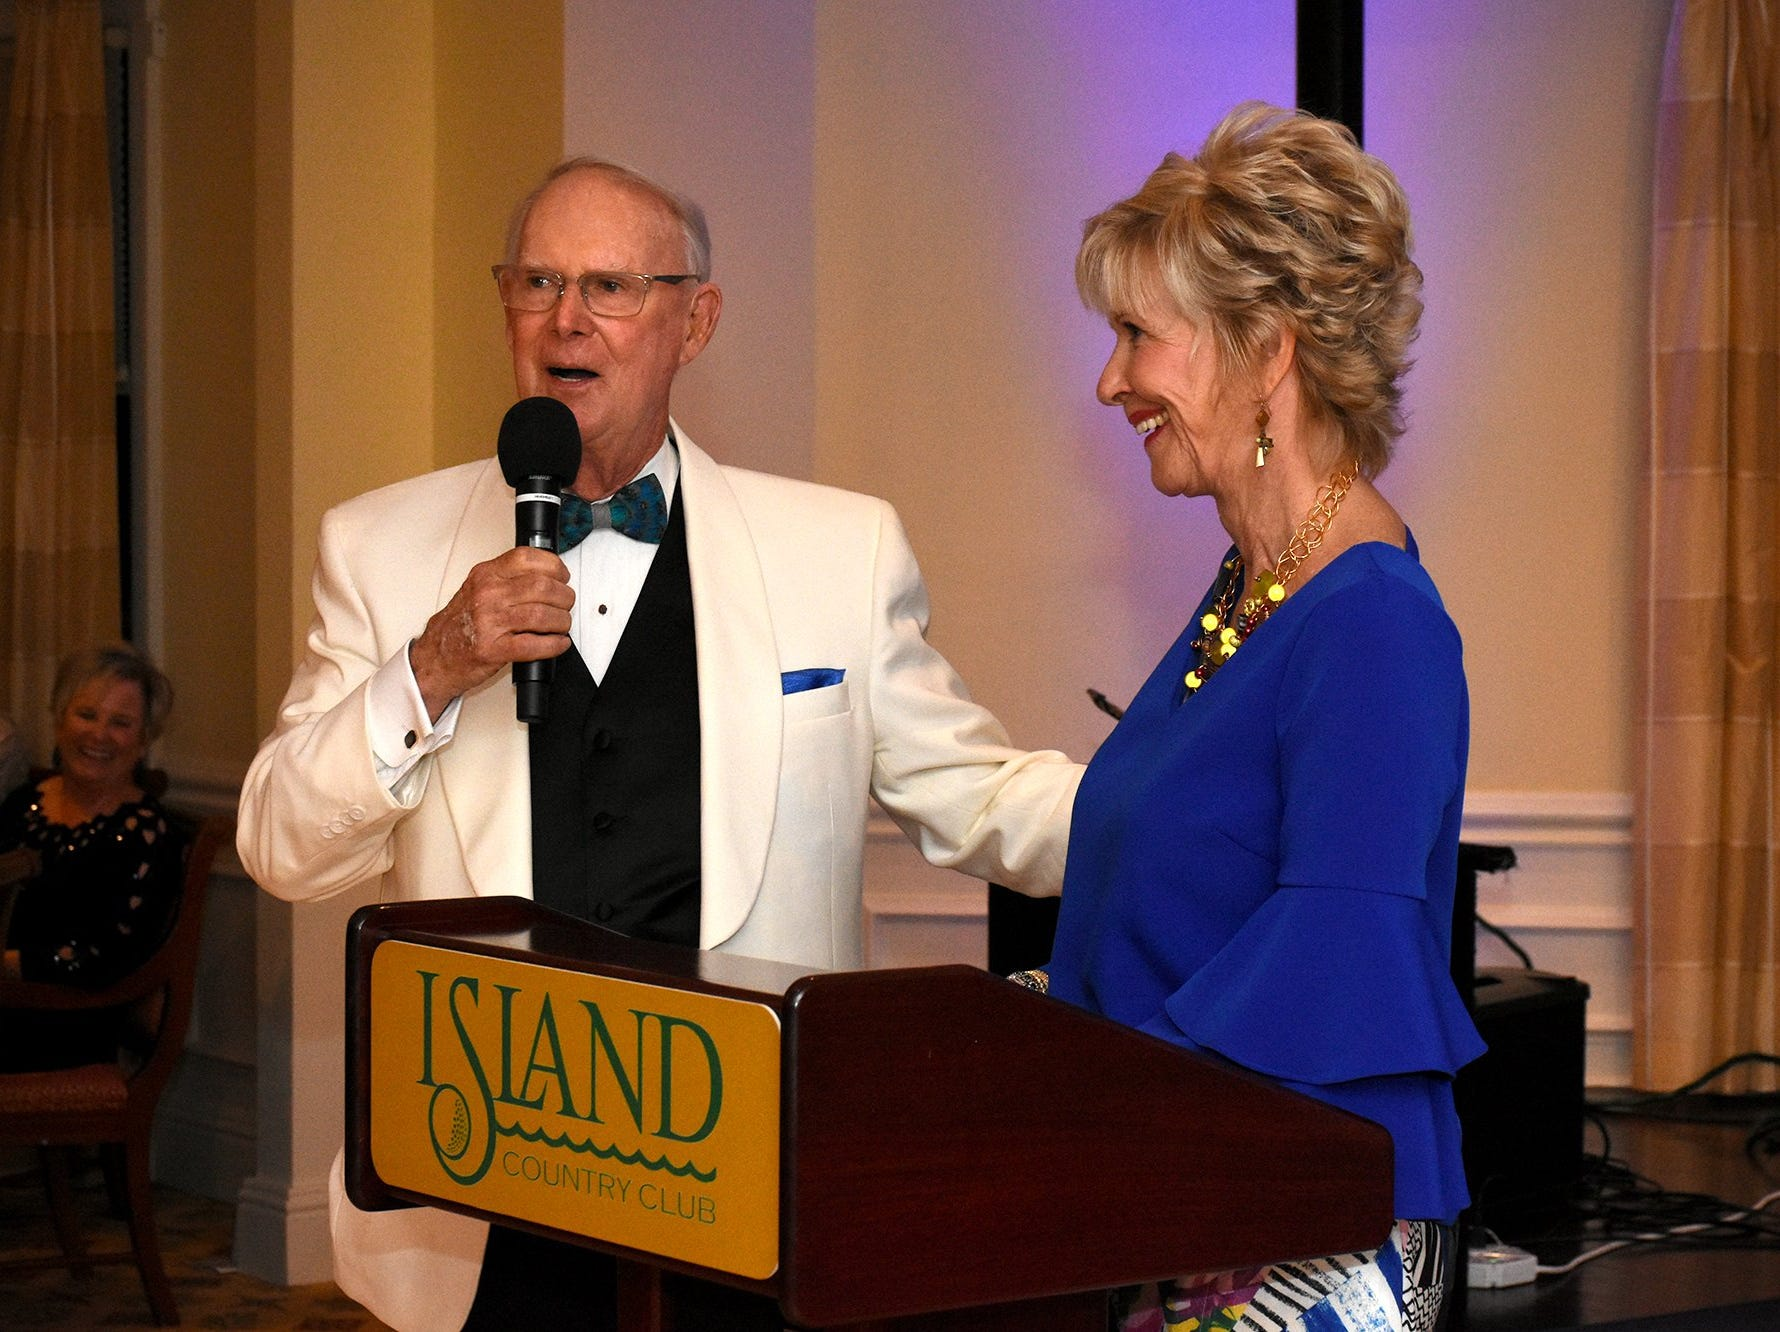 """Gala honorees John and Emily James make some remarks. The Marco Island Cdenter for the Arts held """"Celebrate Art by the Sea,"""" their annual gala, Saturday evening at the Island Country Club."""